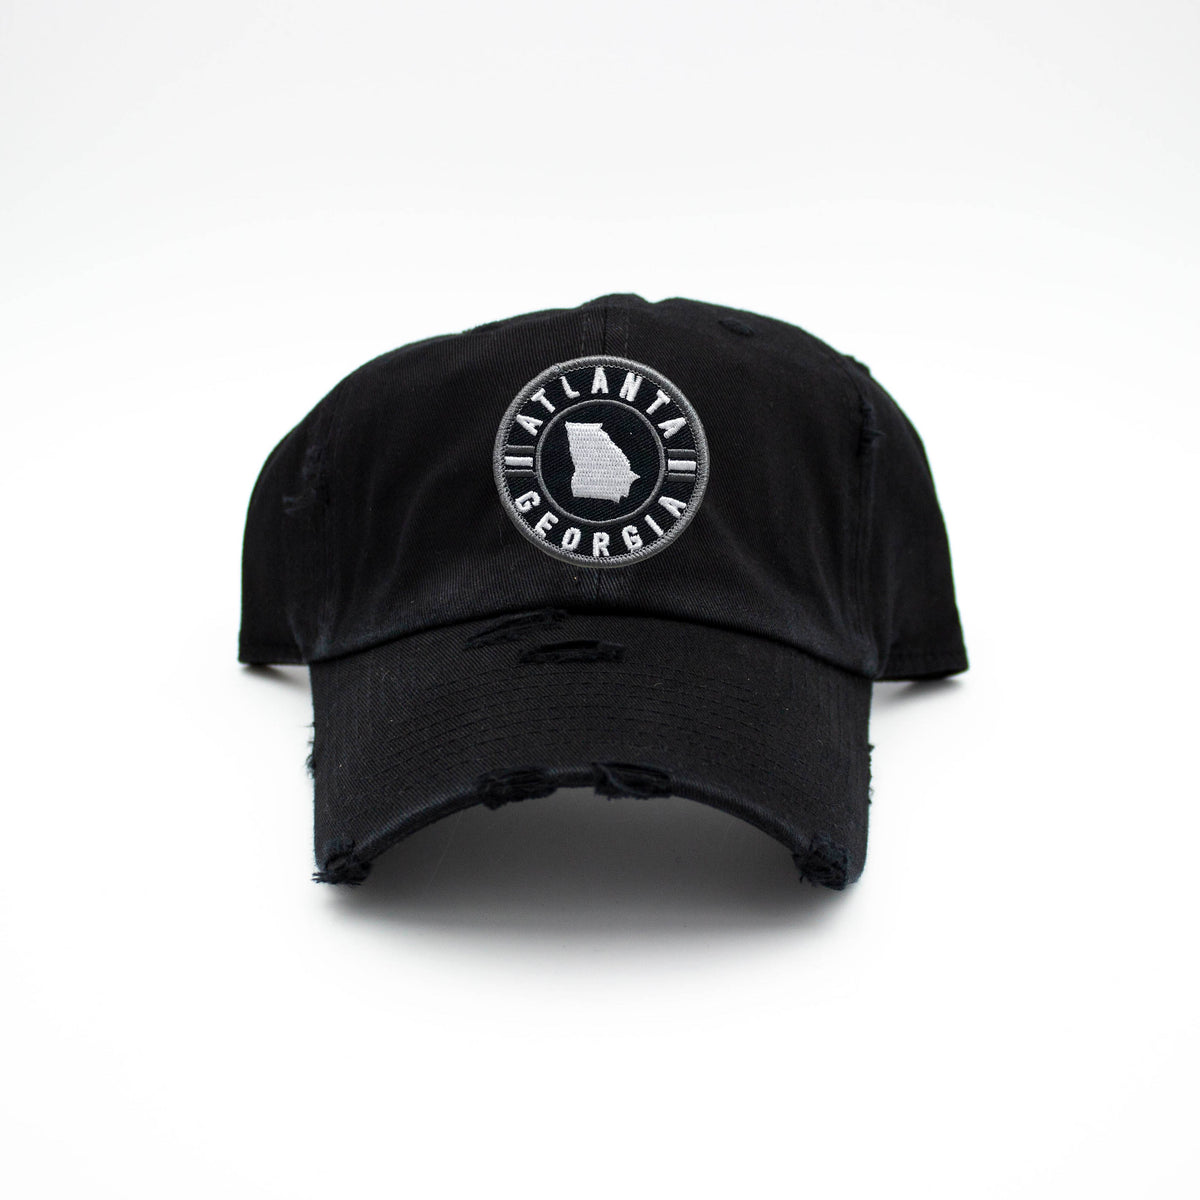 ATLANTA GEORGIA STATE PATCH HAT - BLACK